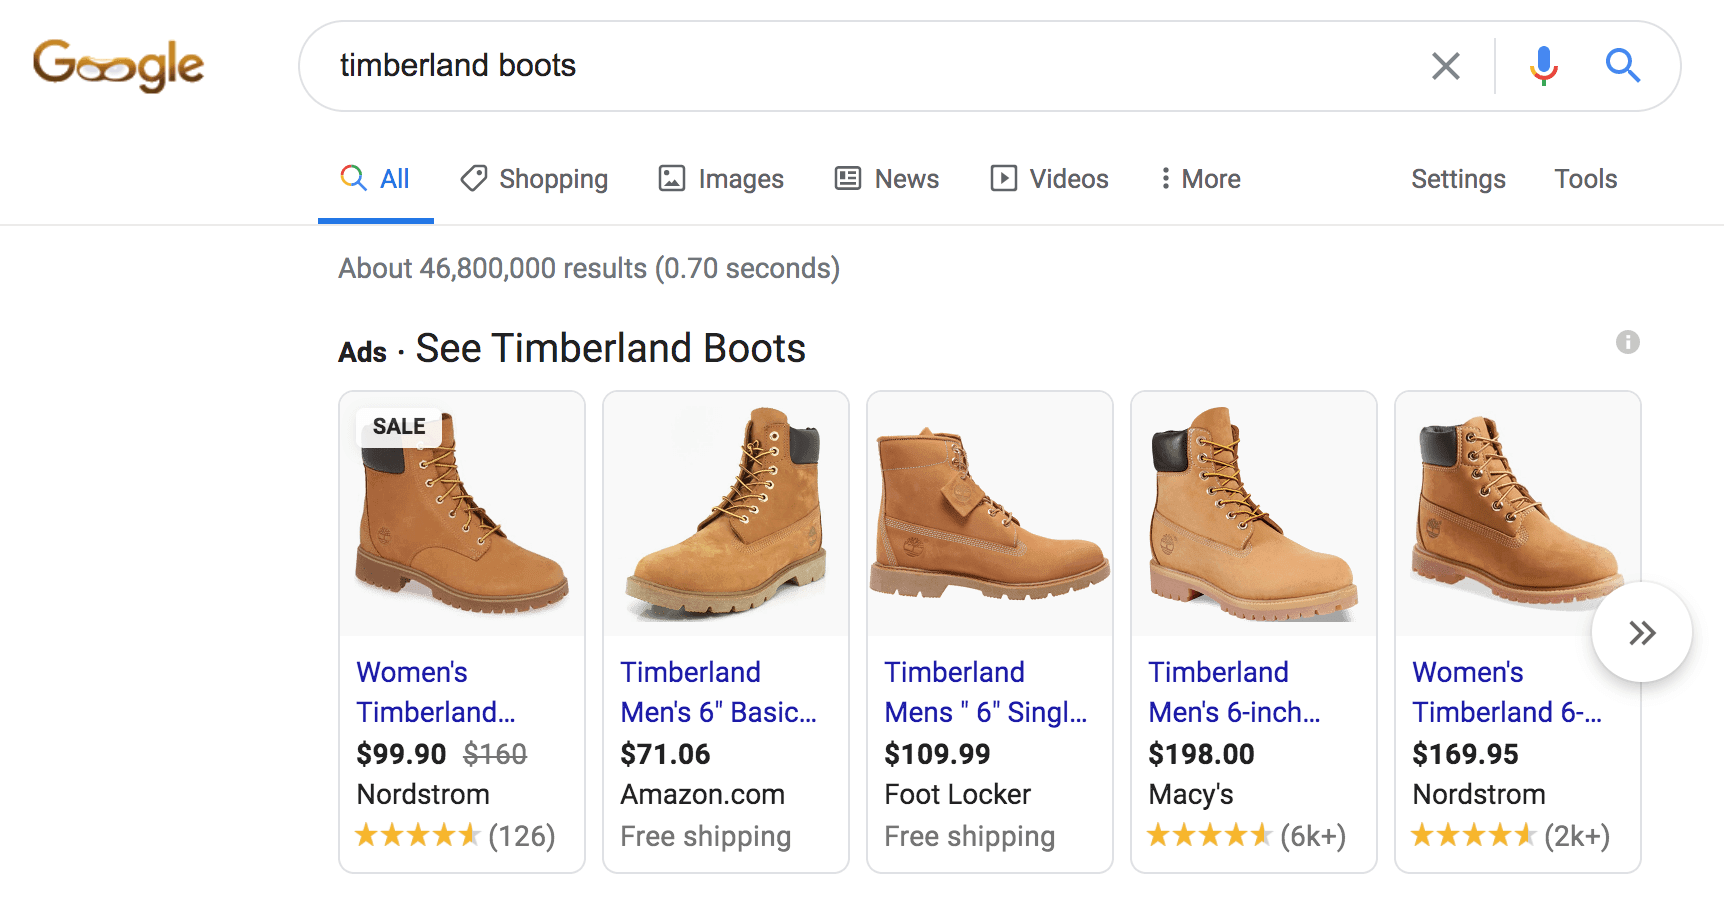 Here's what a typical Google Shopping ad looks like